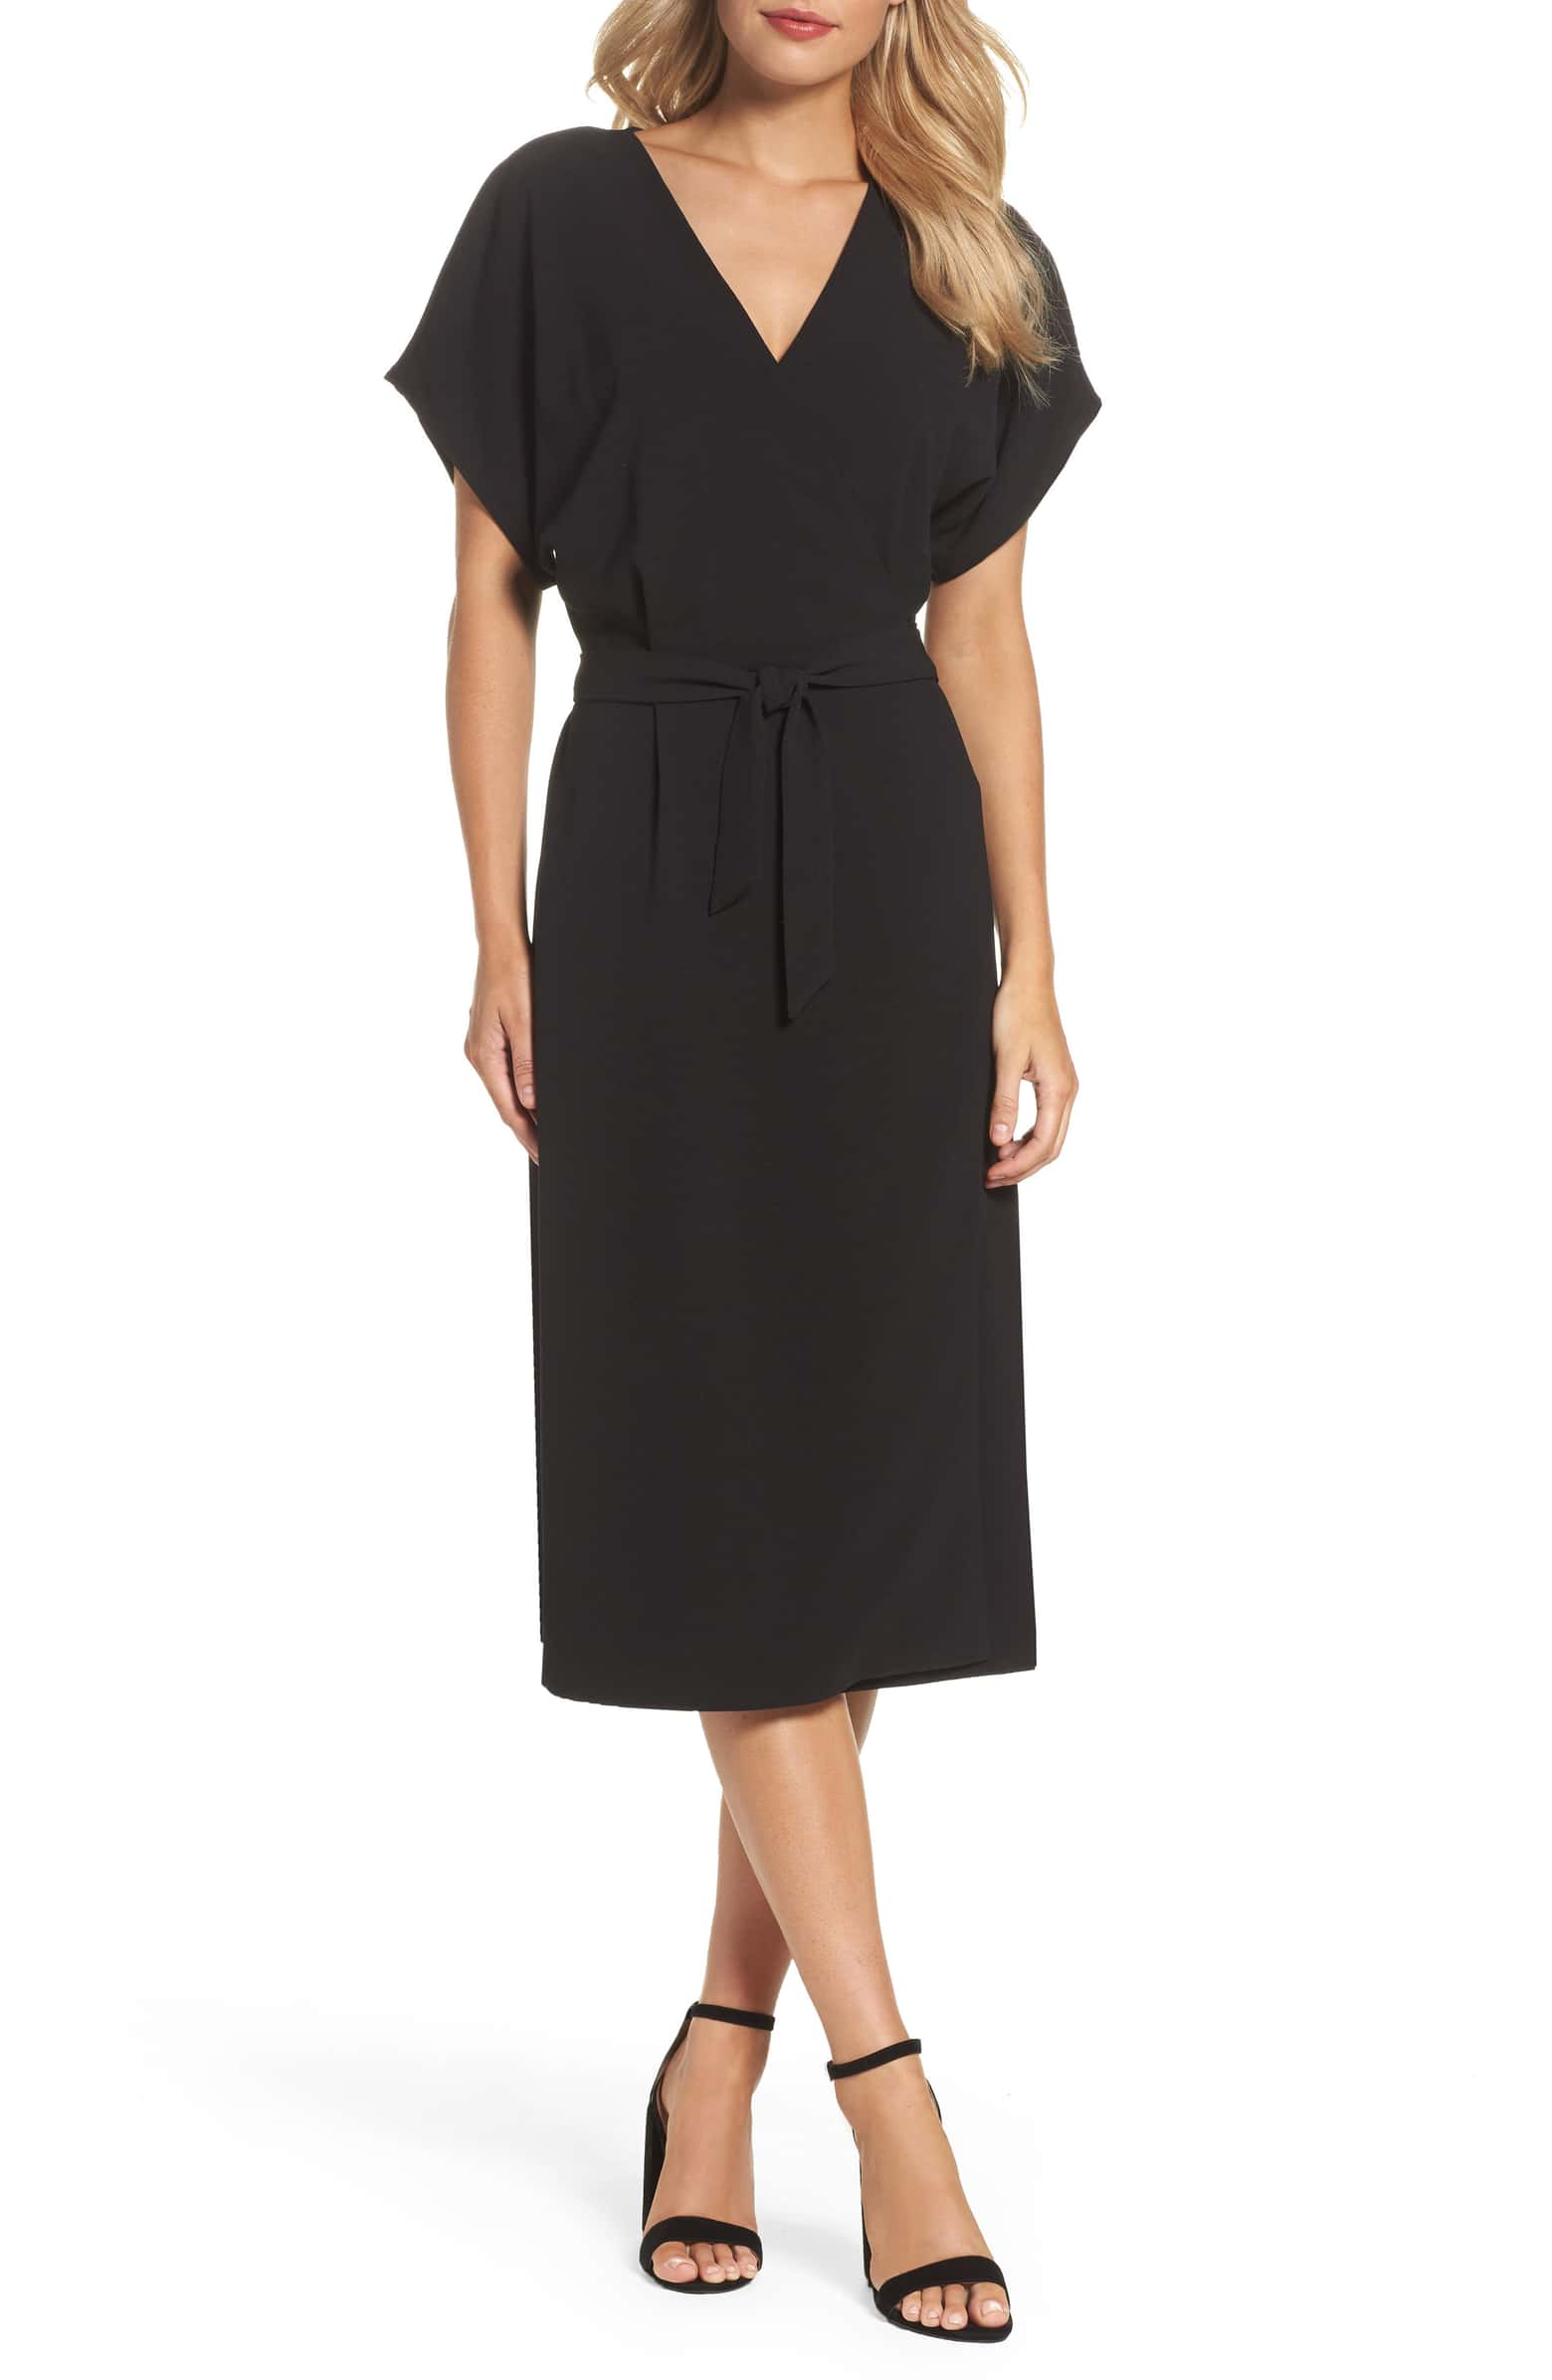 Felicity and Co. - Wait, a black dress doesn't scream spring? The lighter, open sleeve and casual tie is just the transition piece that you'll pop on every Monday when you can't bear a jacket and layers any longer.$98